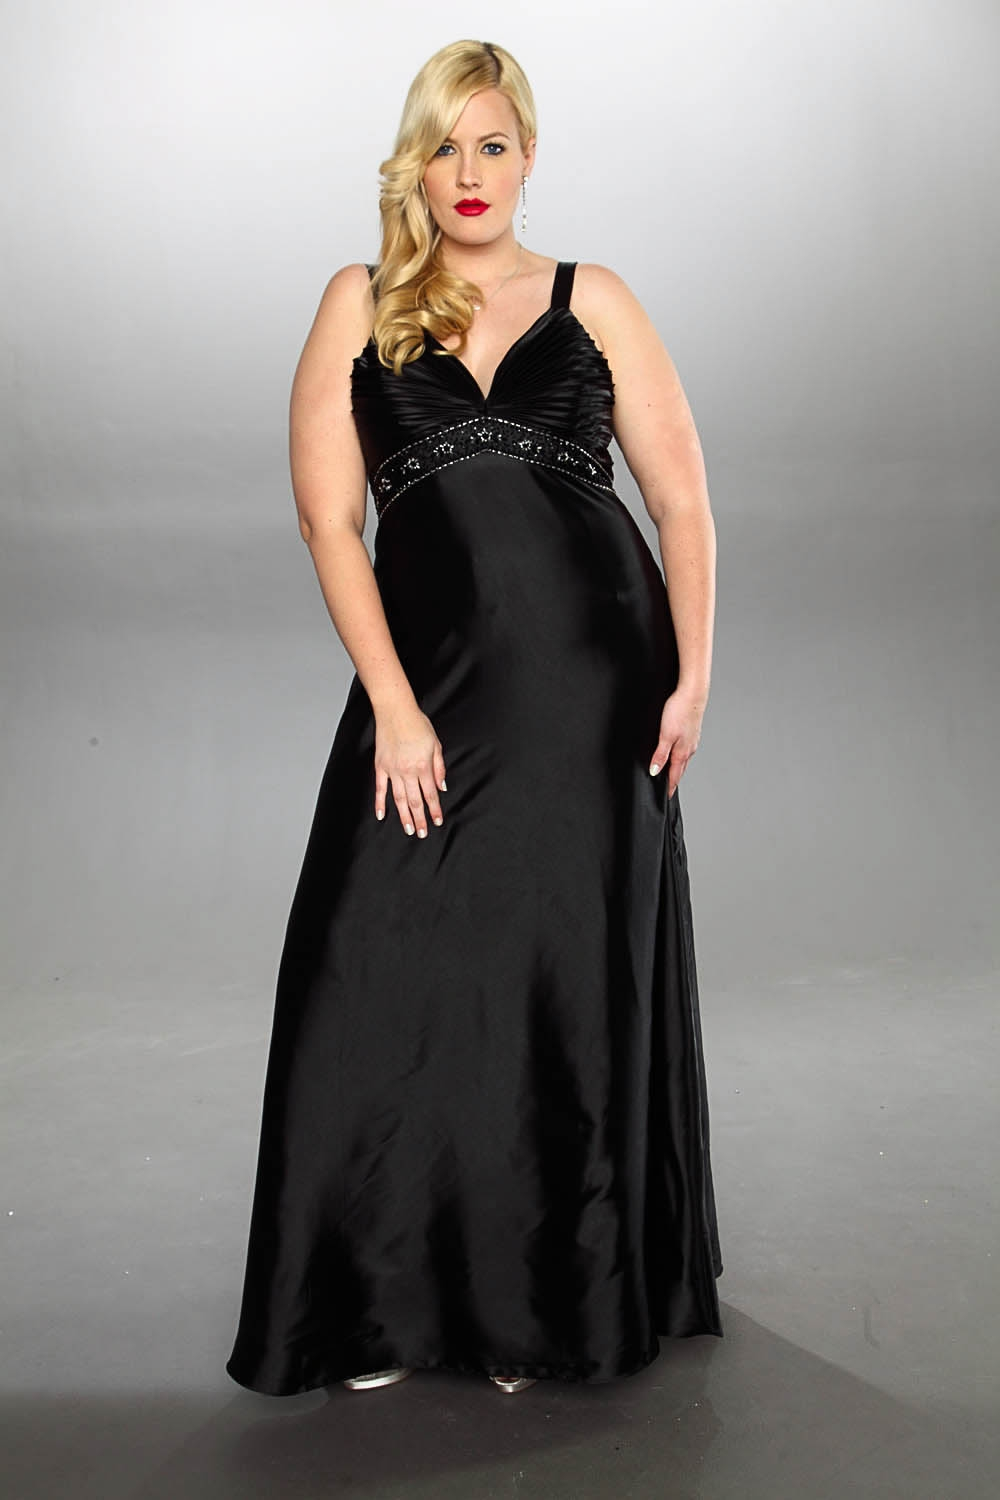 Plus Size Black Dresses For Weddings Shopping Guide We